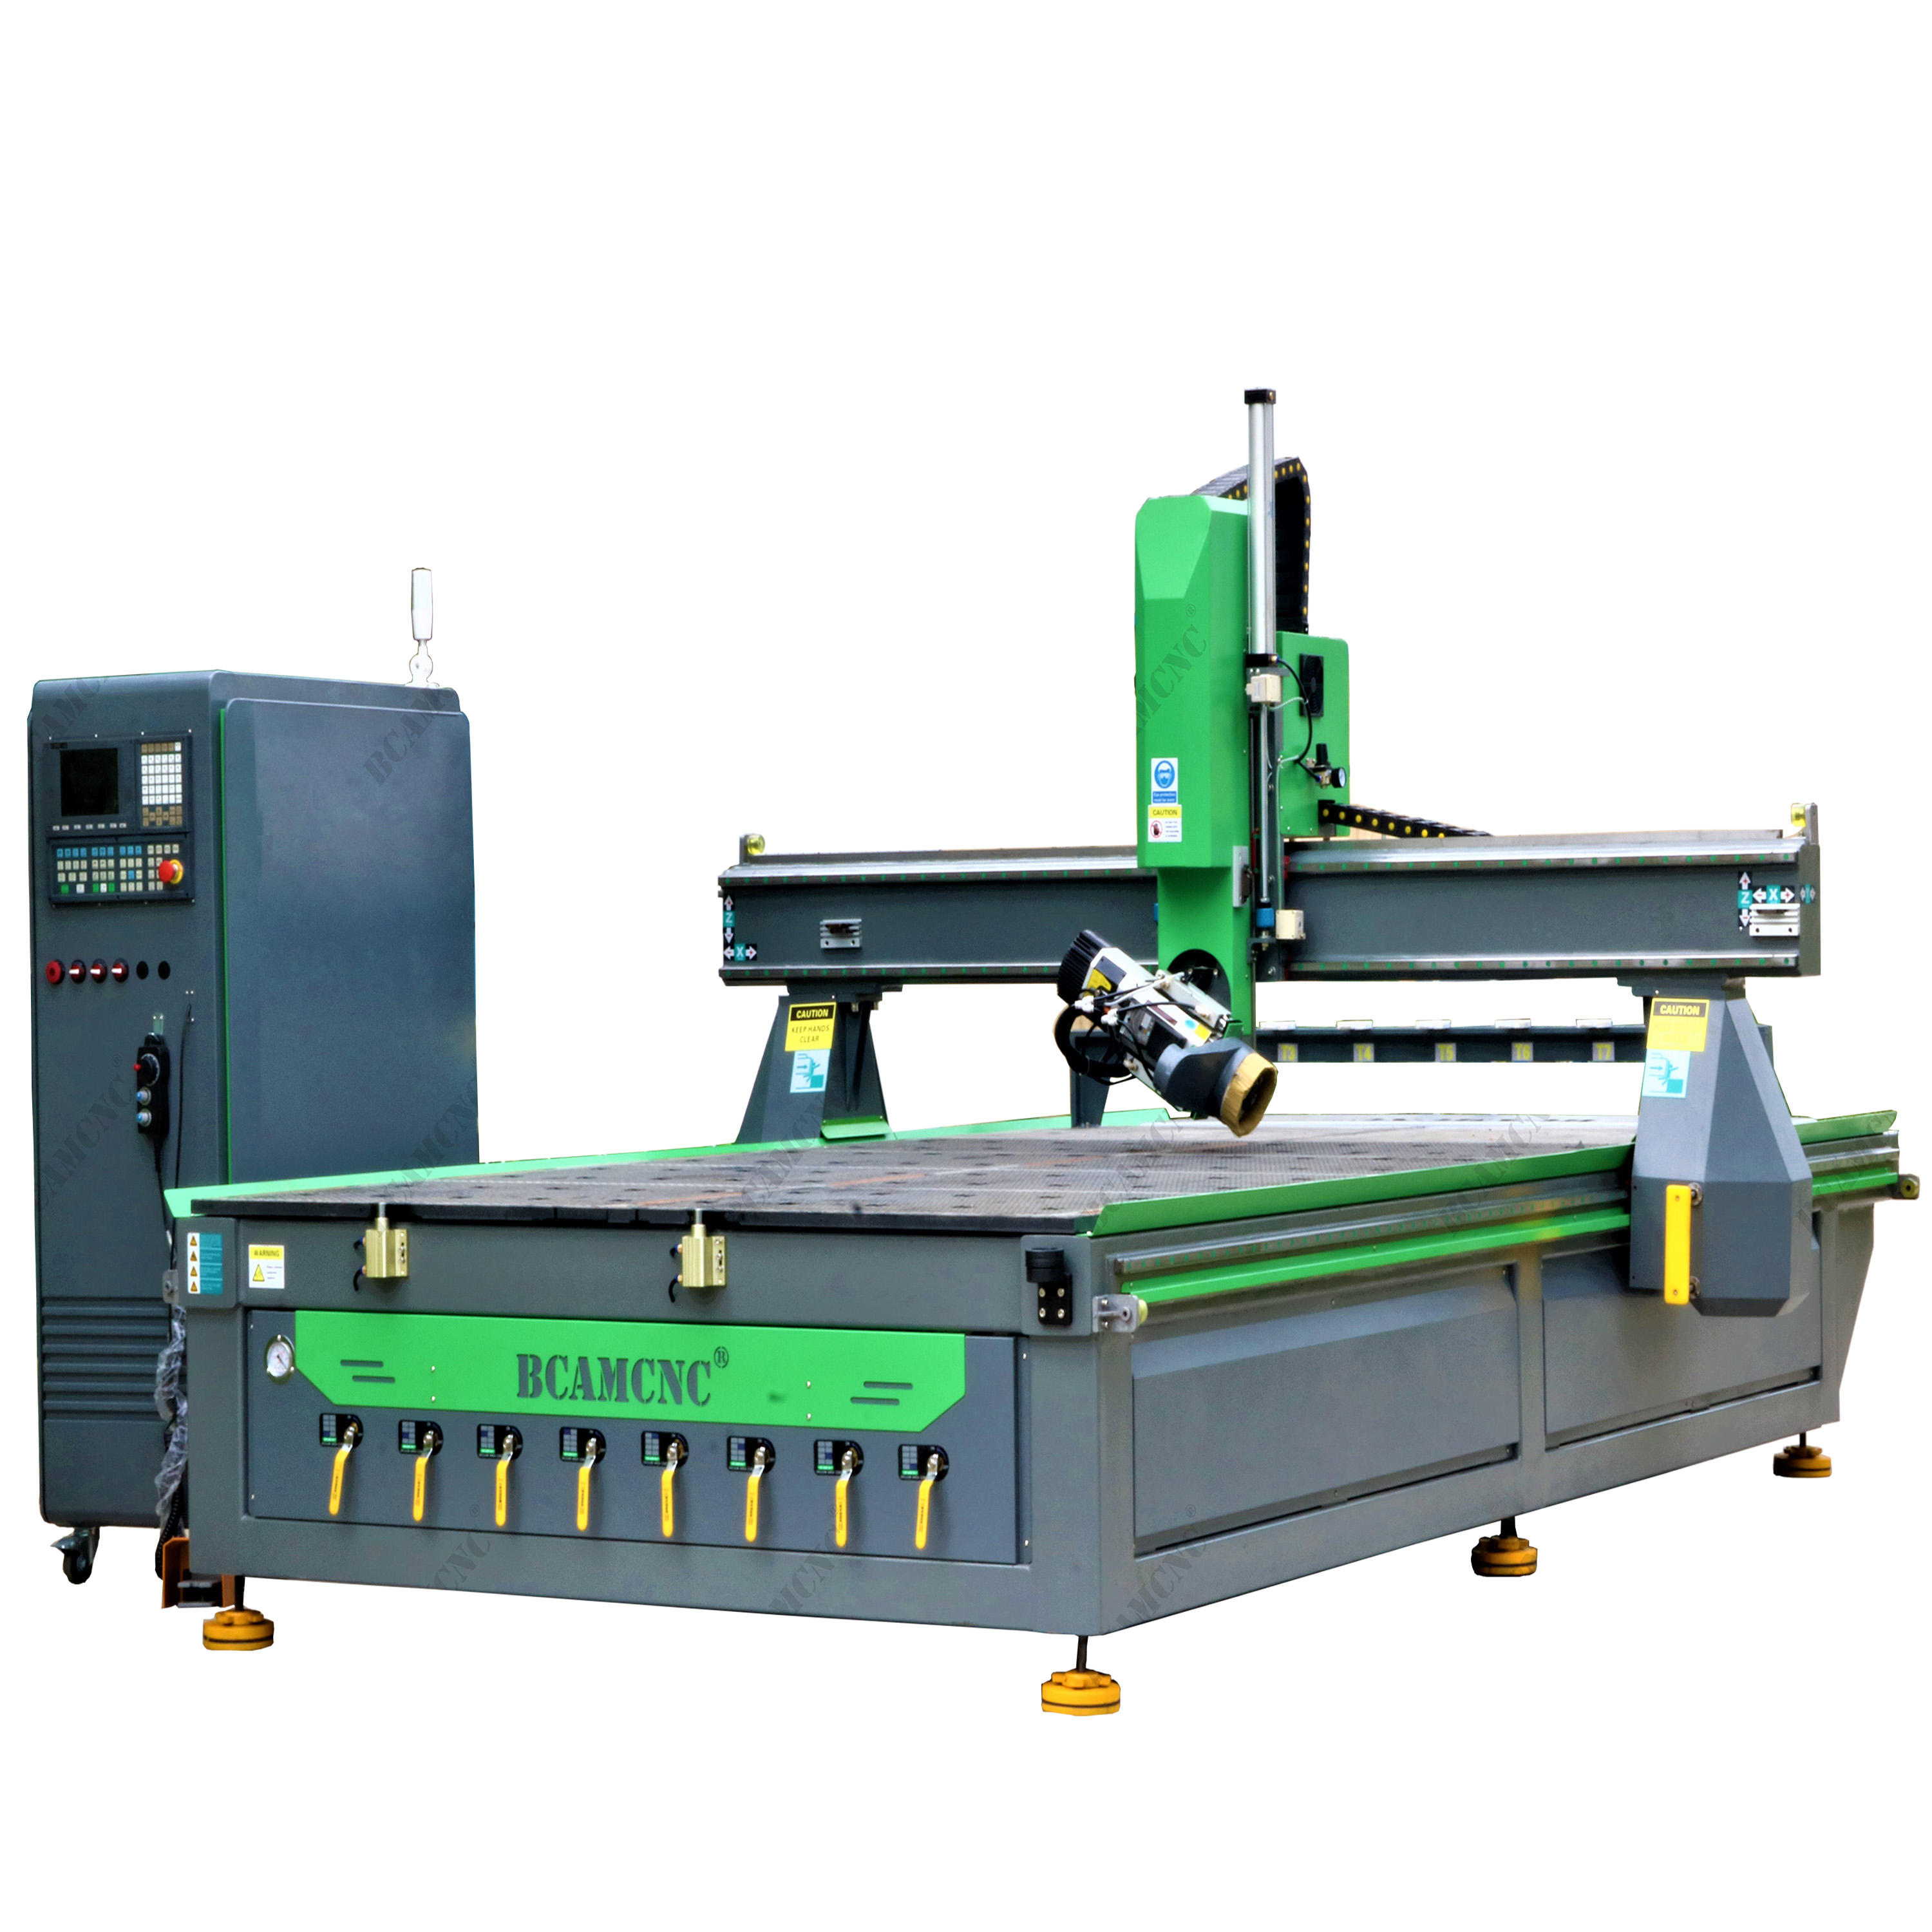 Bcamcnc 3D cnc router wood machine 4 axis cnc machine woodworking machine for foam, boat, face, body model cnc router